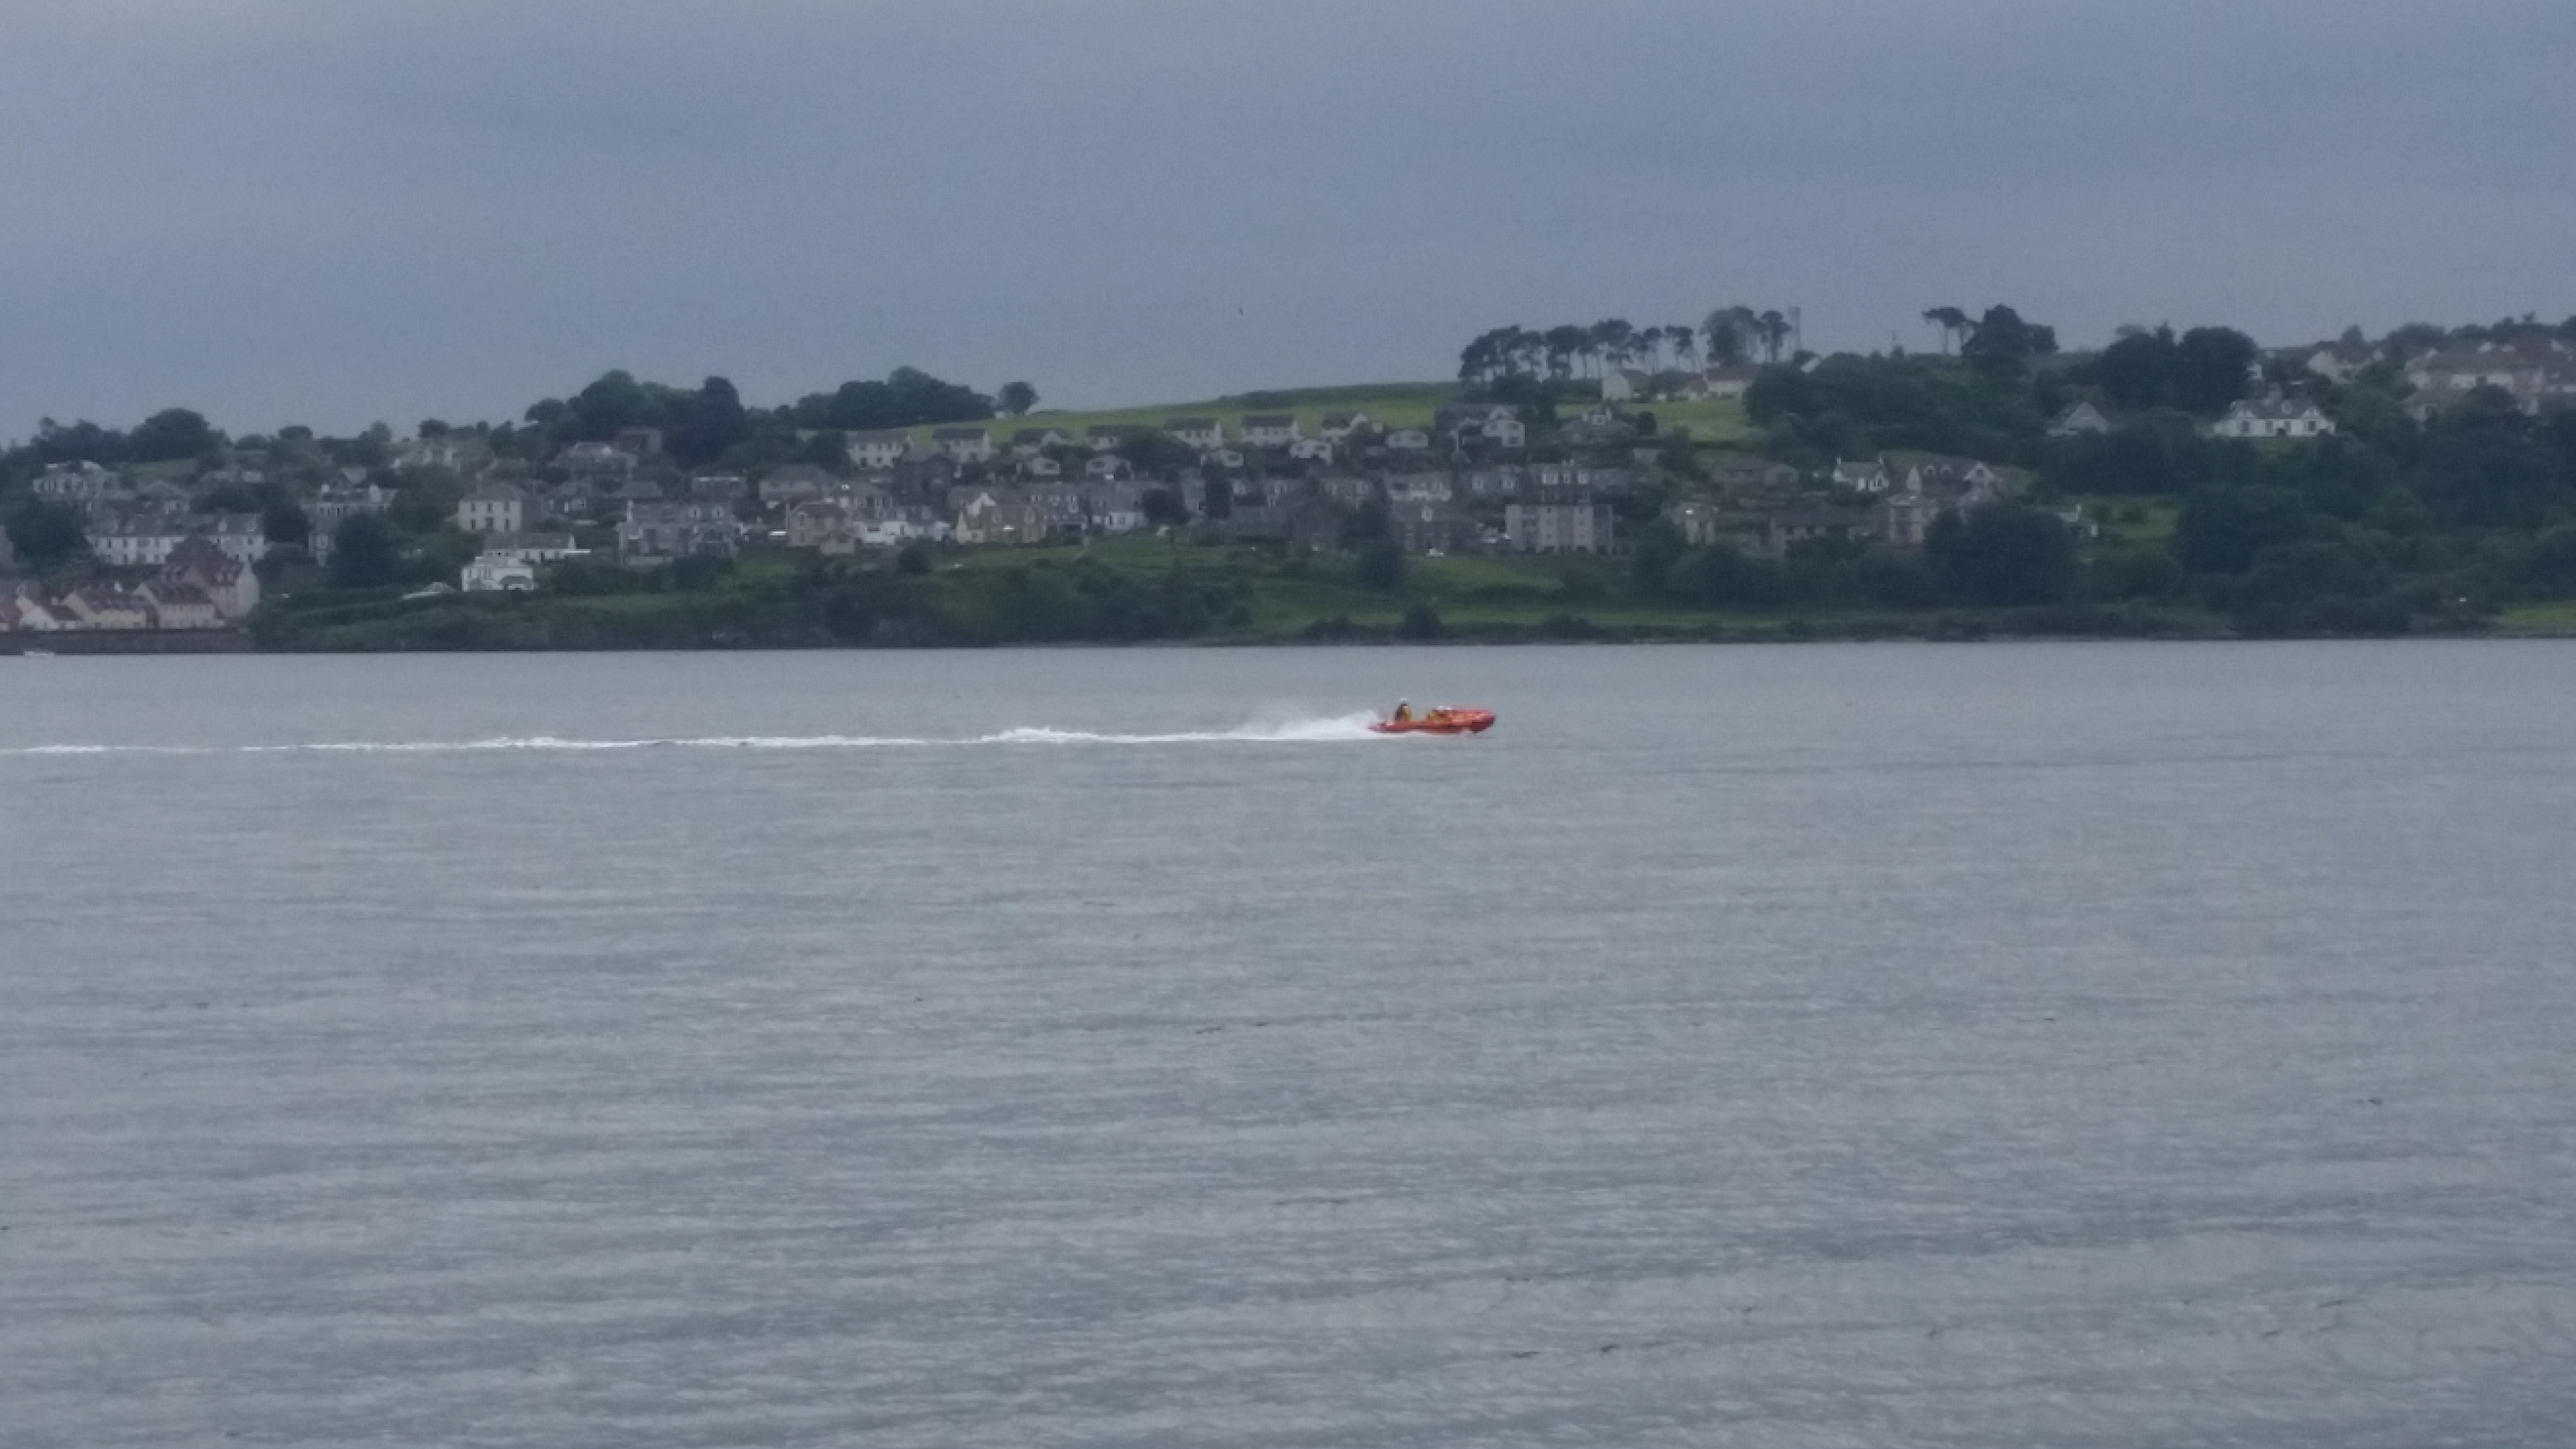 The lifeboat crew as they set off on their rescue operation.